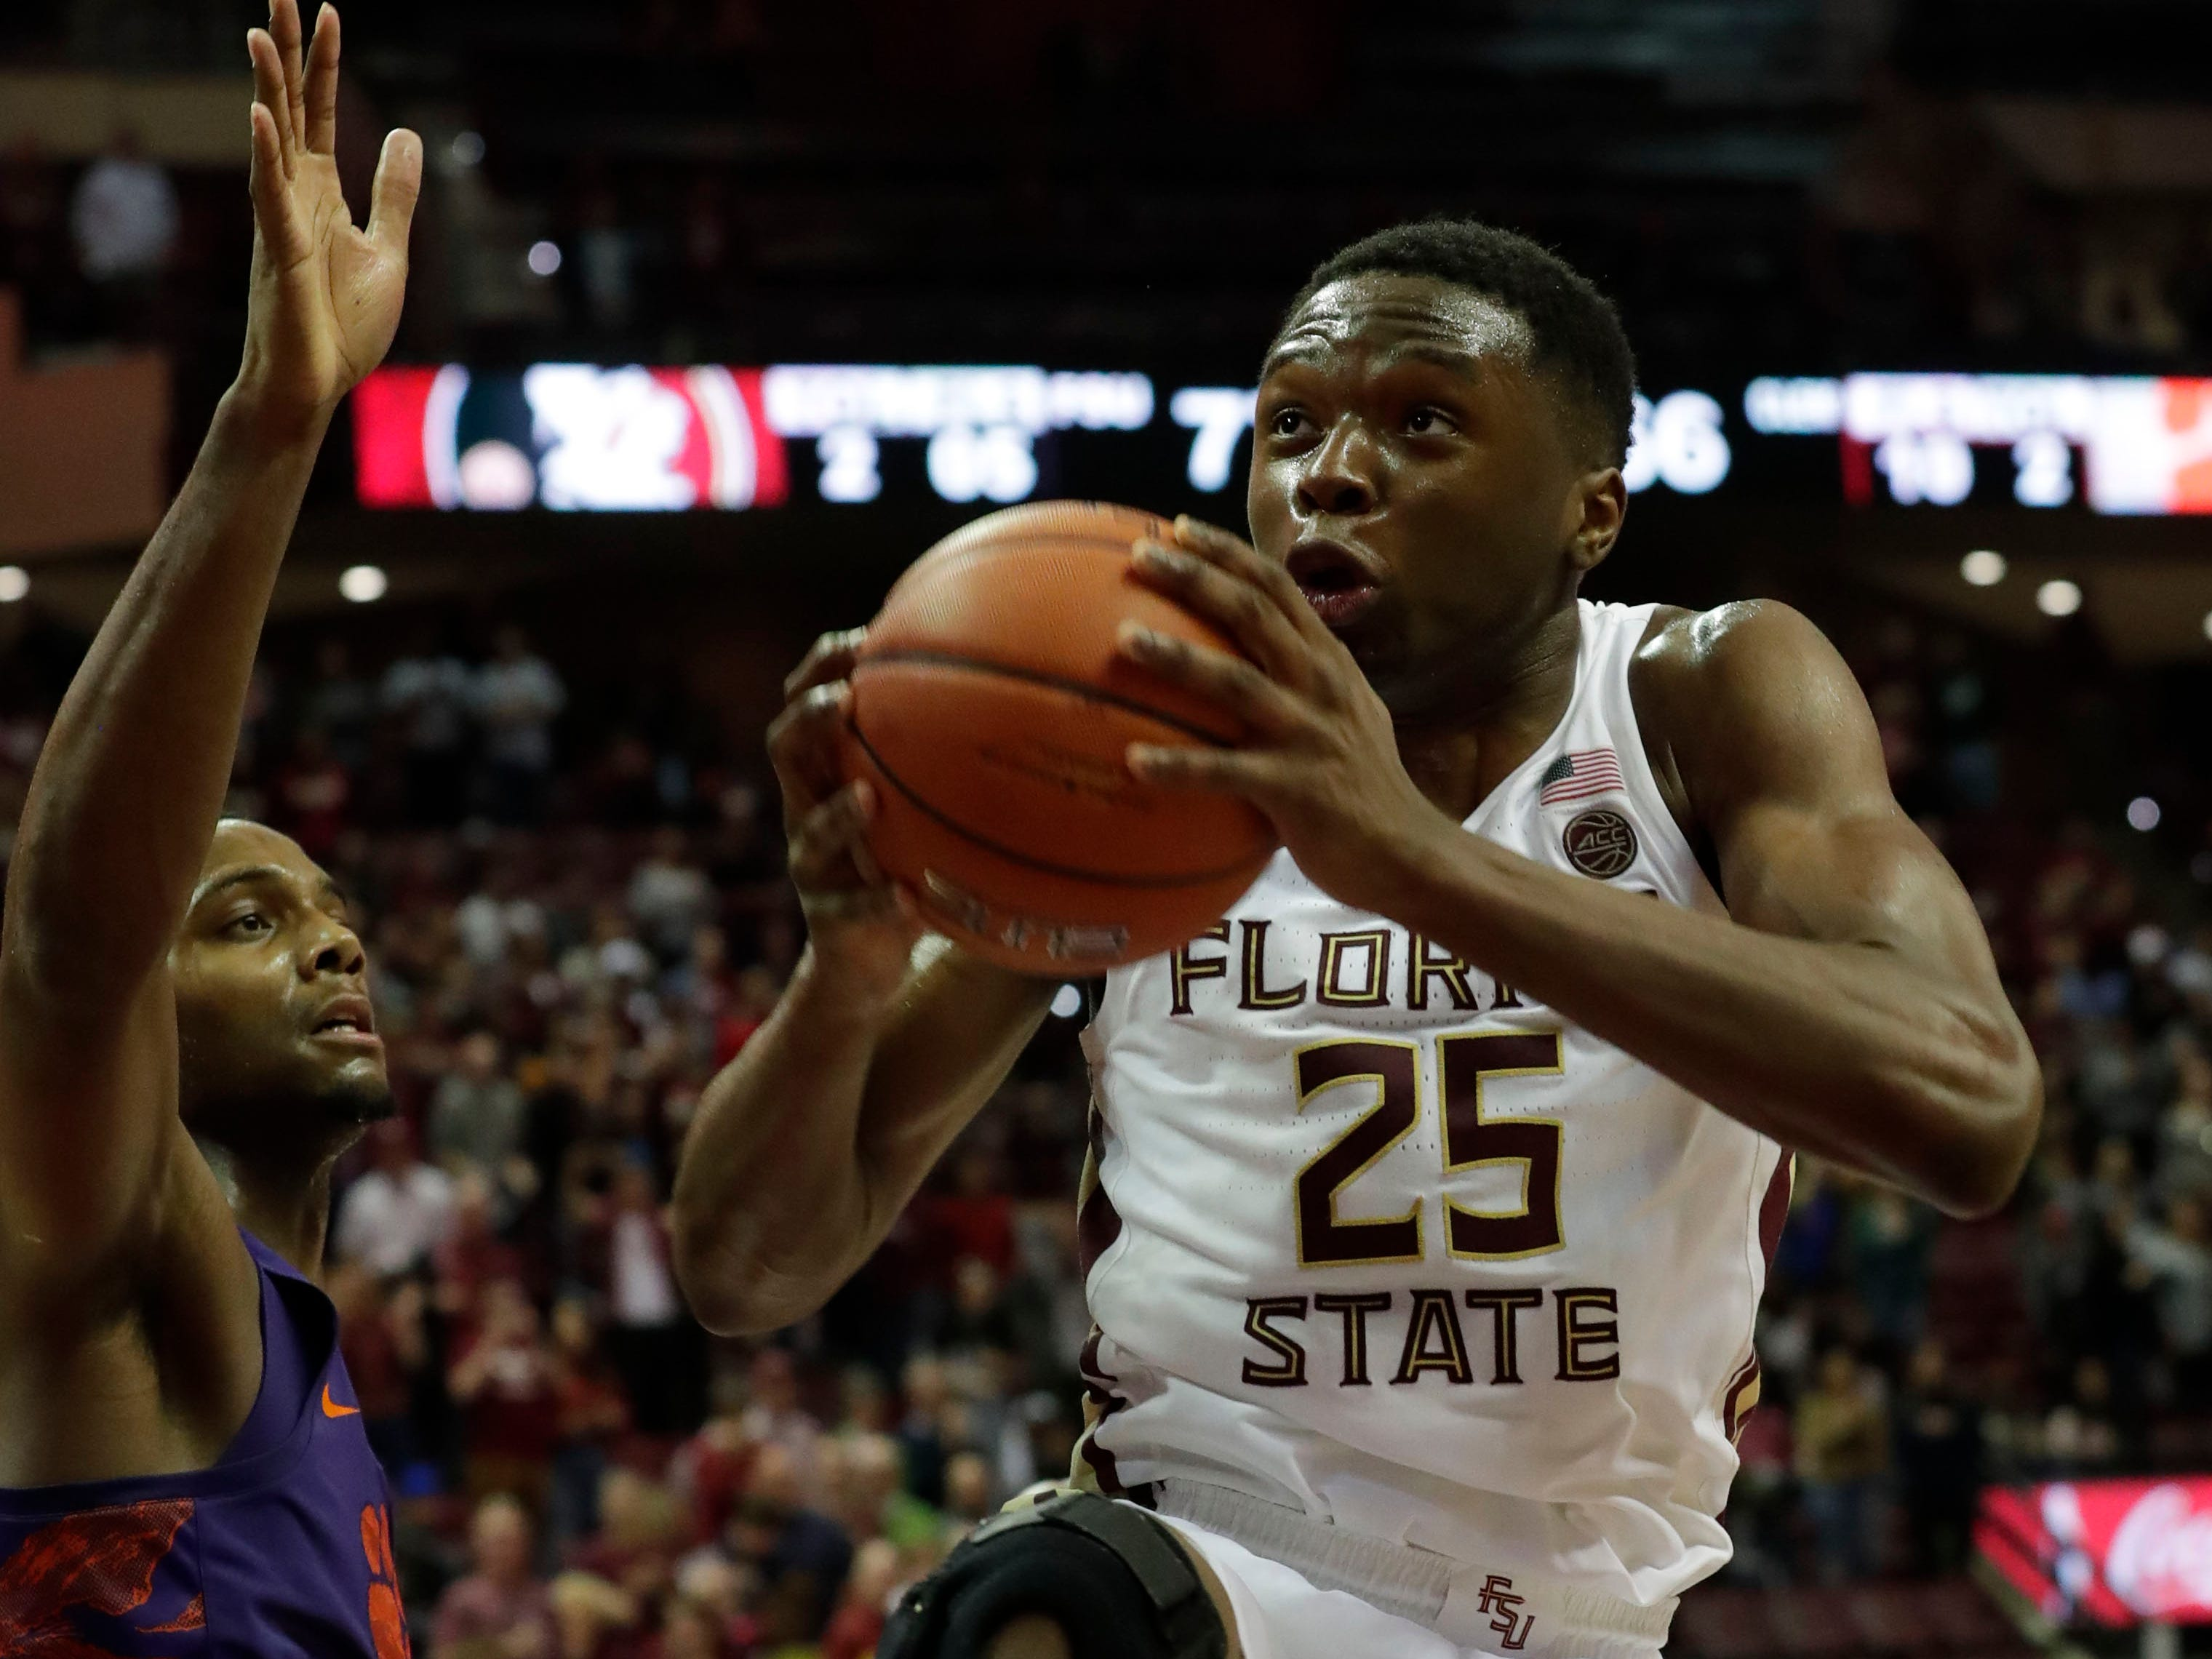 Florida State Seminoles forward Mfiondu Kabengele (25) drives the ball in to dunk on the Tigers. The Florida State Seminoles face off against the Clemson Tigers at the Tucker Civic Center, Tuesday, Jan. 22, 2019.